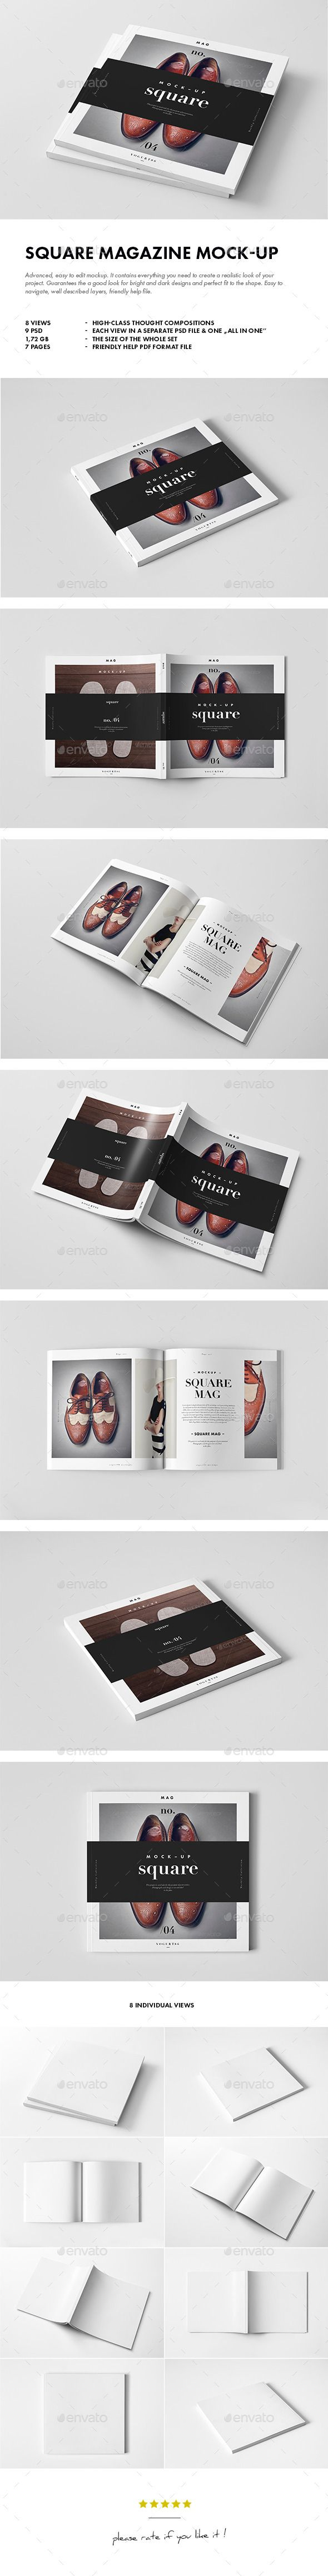 Square Magazine Mock-up | Buy and Download: http://graphicriver.net/item/square-magazine-mockup/9877732?ref=ksioks